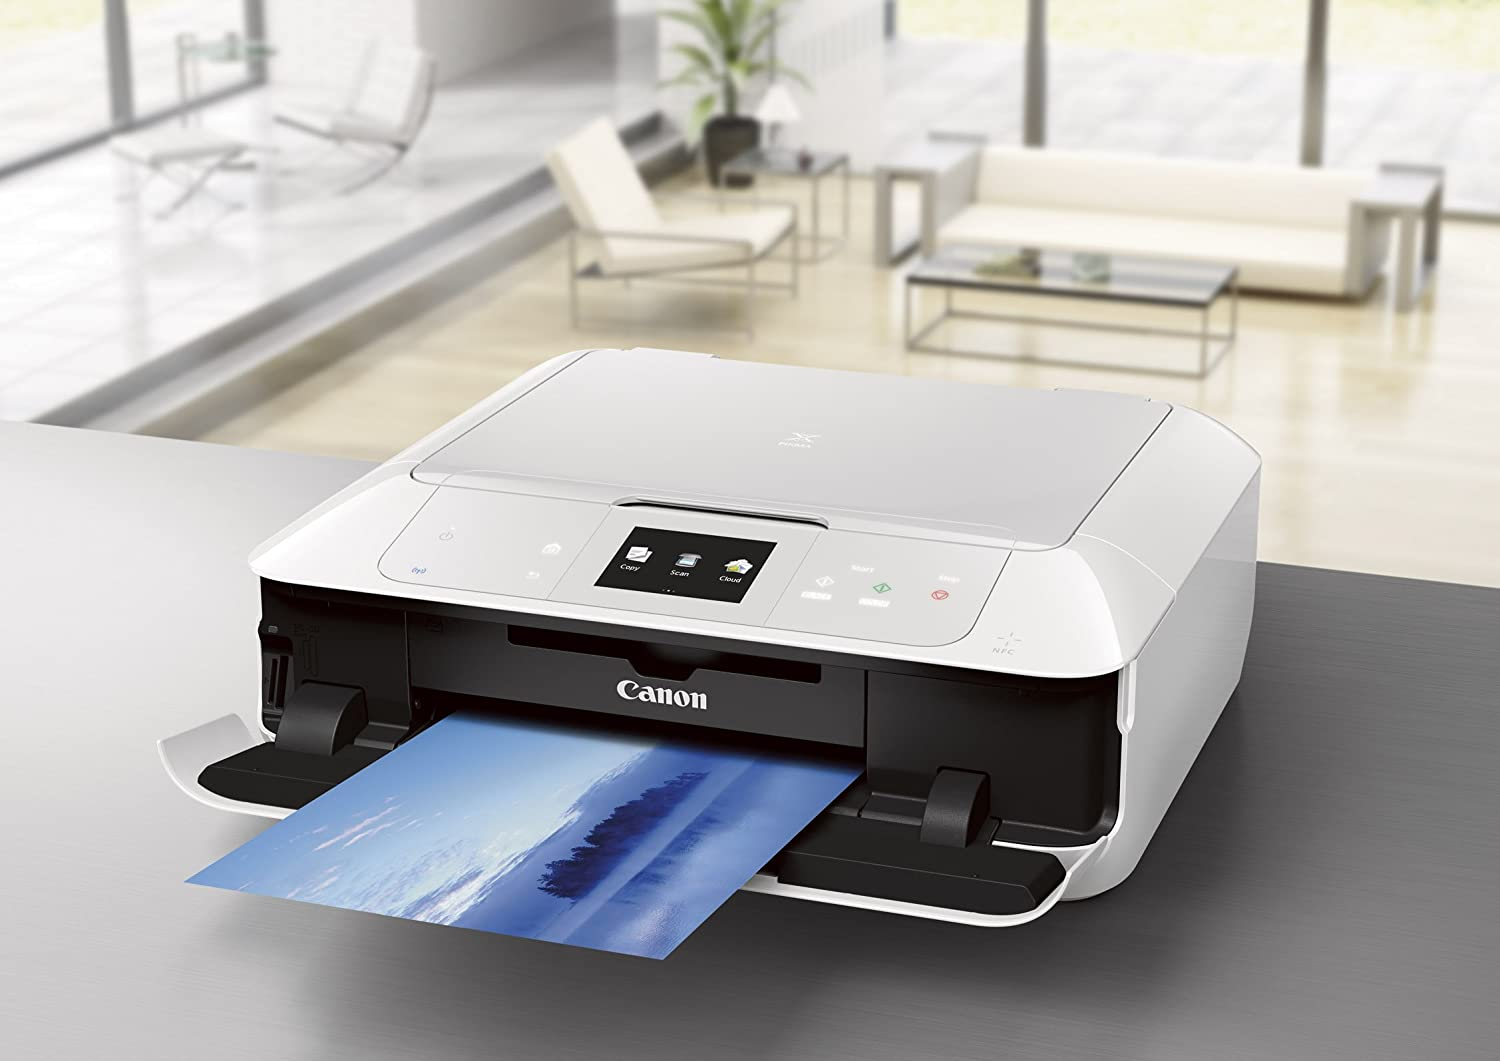 10 best multi function printers 2018 top rated 2019 list for Best buy photo printing